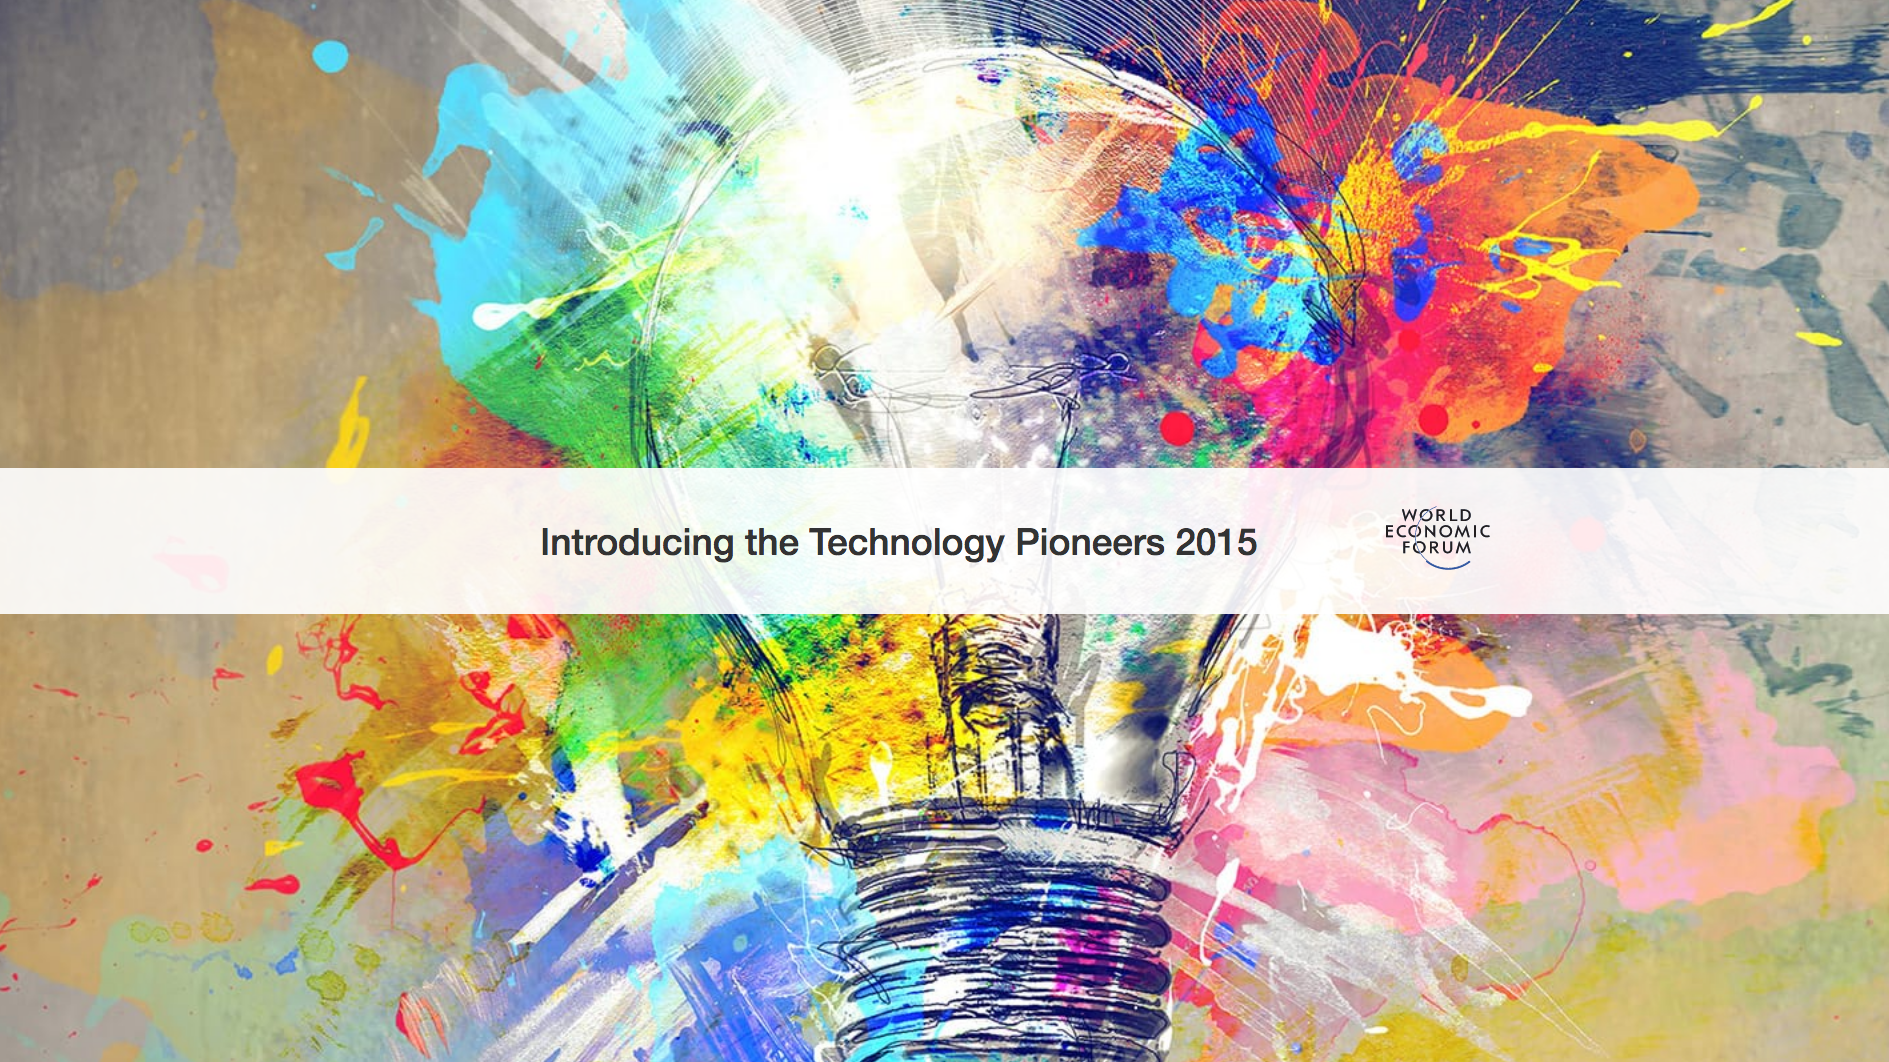 Introducing the The World Economic Forum's Technology Pioneers